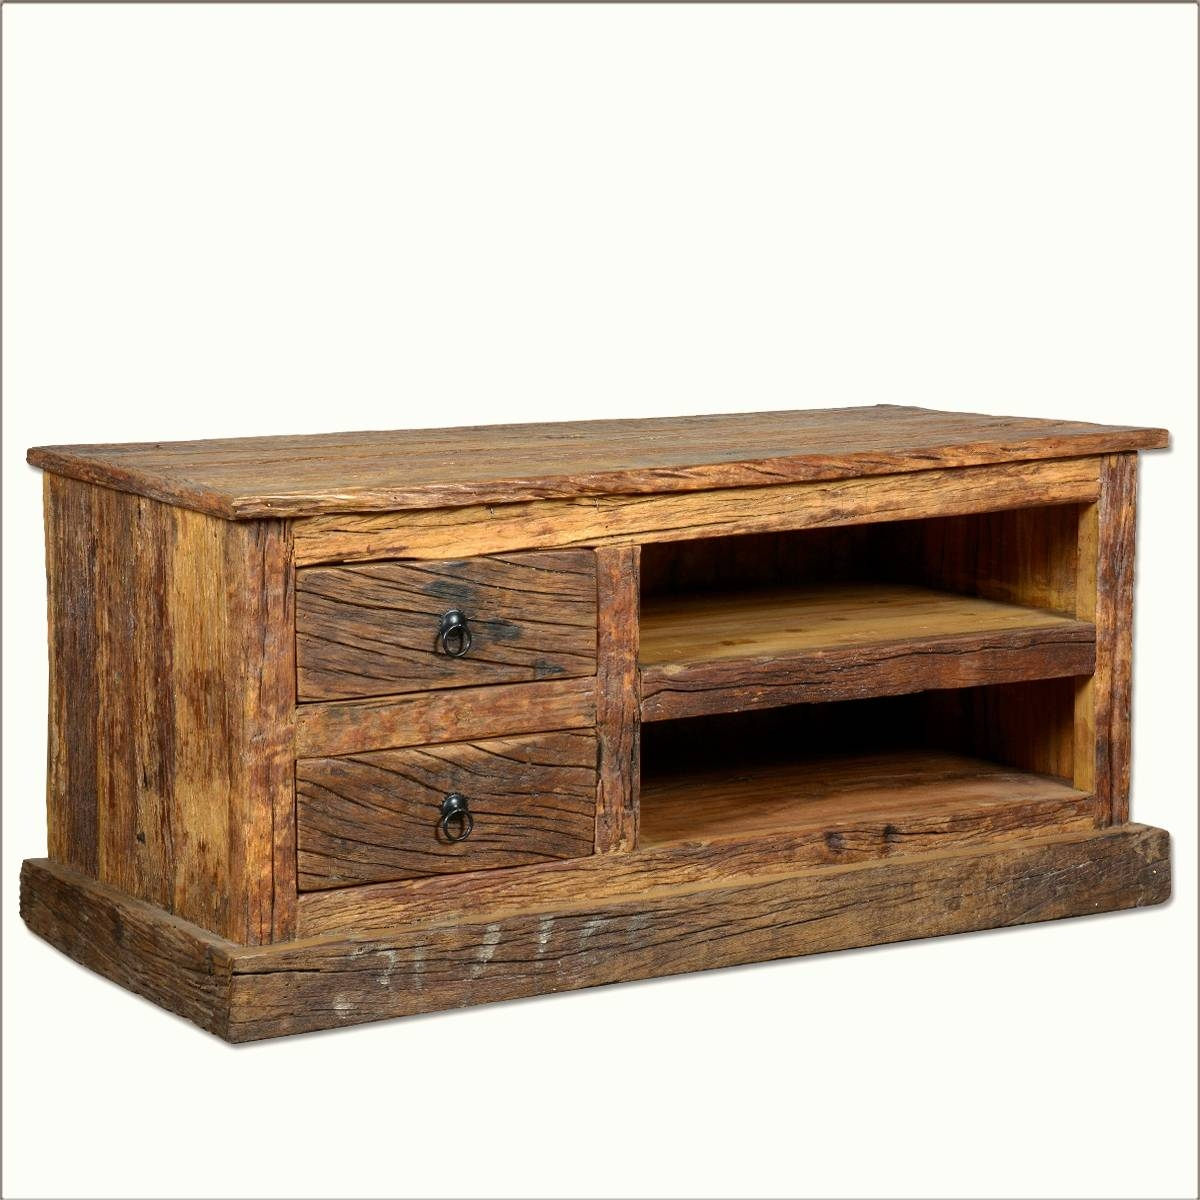 Rustic Sofa Tables For Sale: Top 15 Of Rustic Tv Stands For Sale